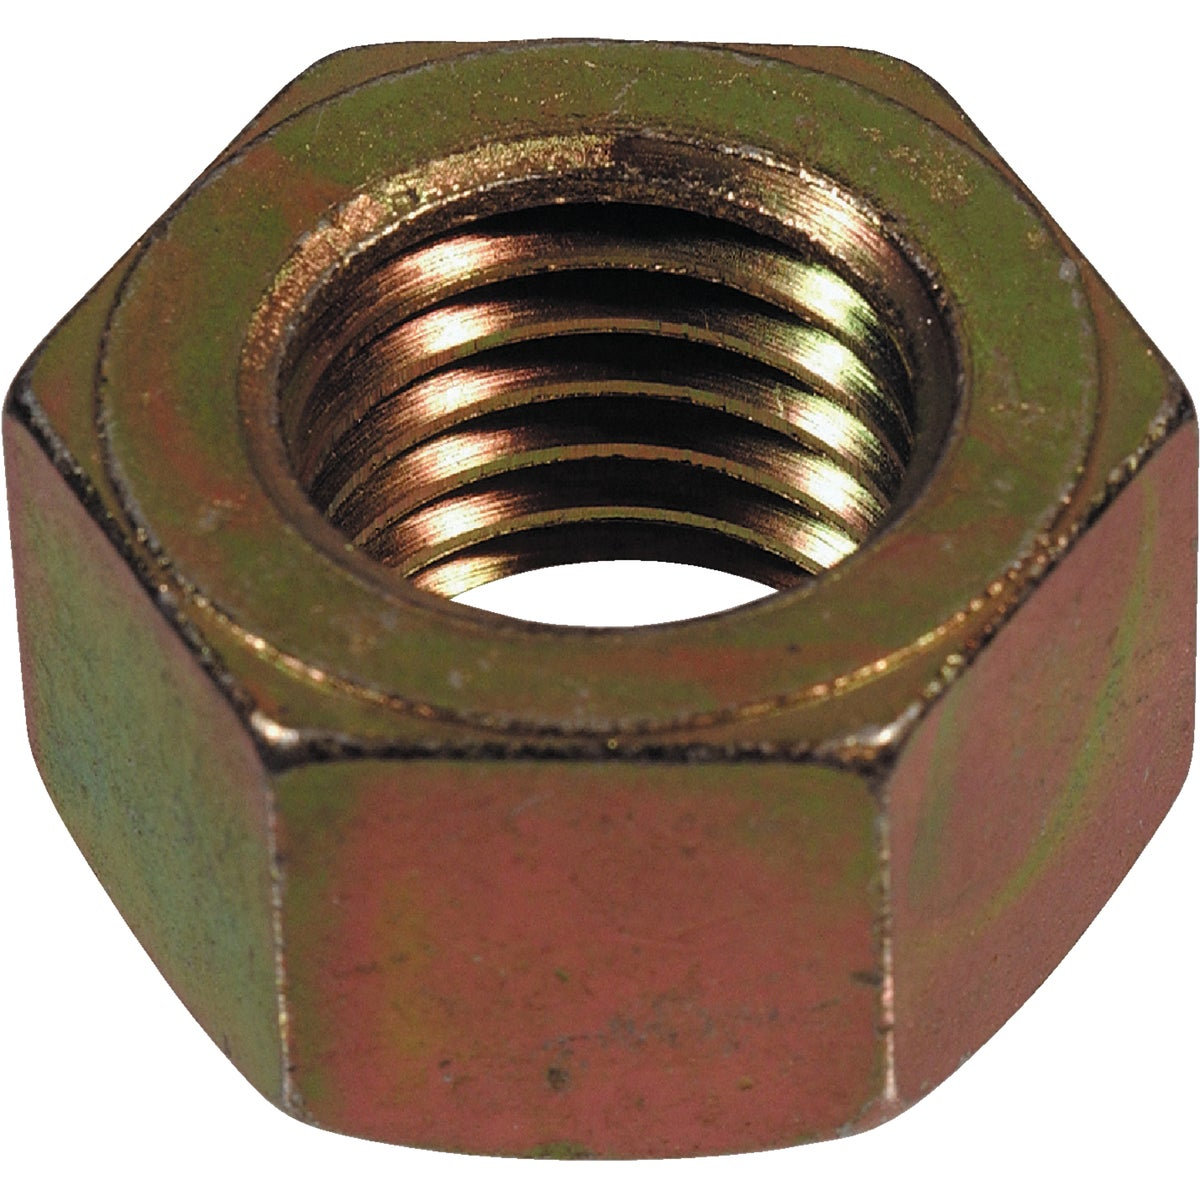 7/16-14 YC G8 HEX NUT - 180409 by Hillman Fastener